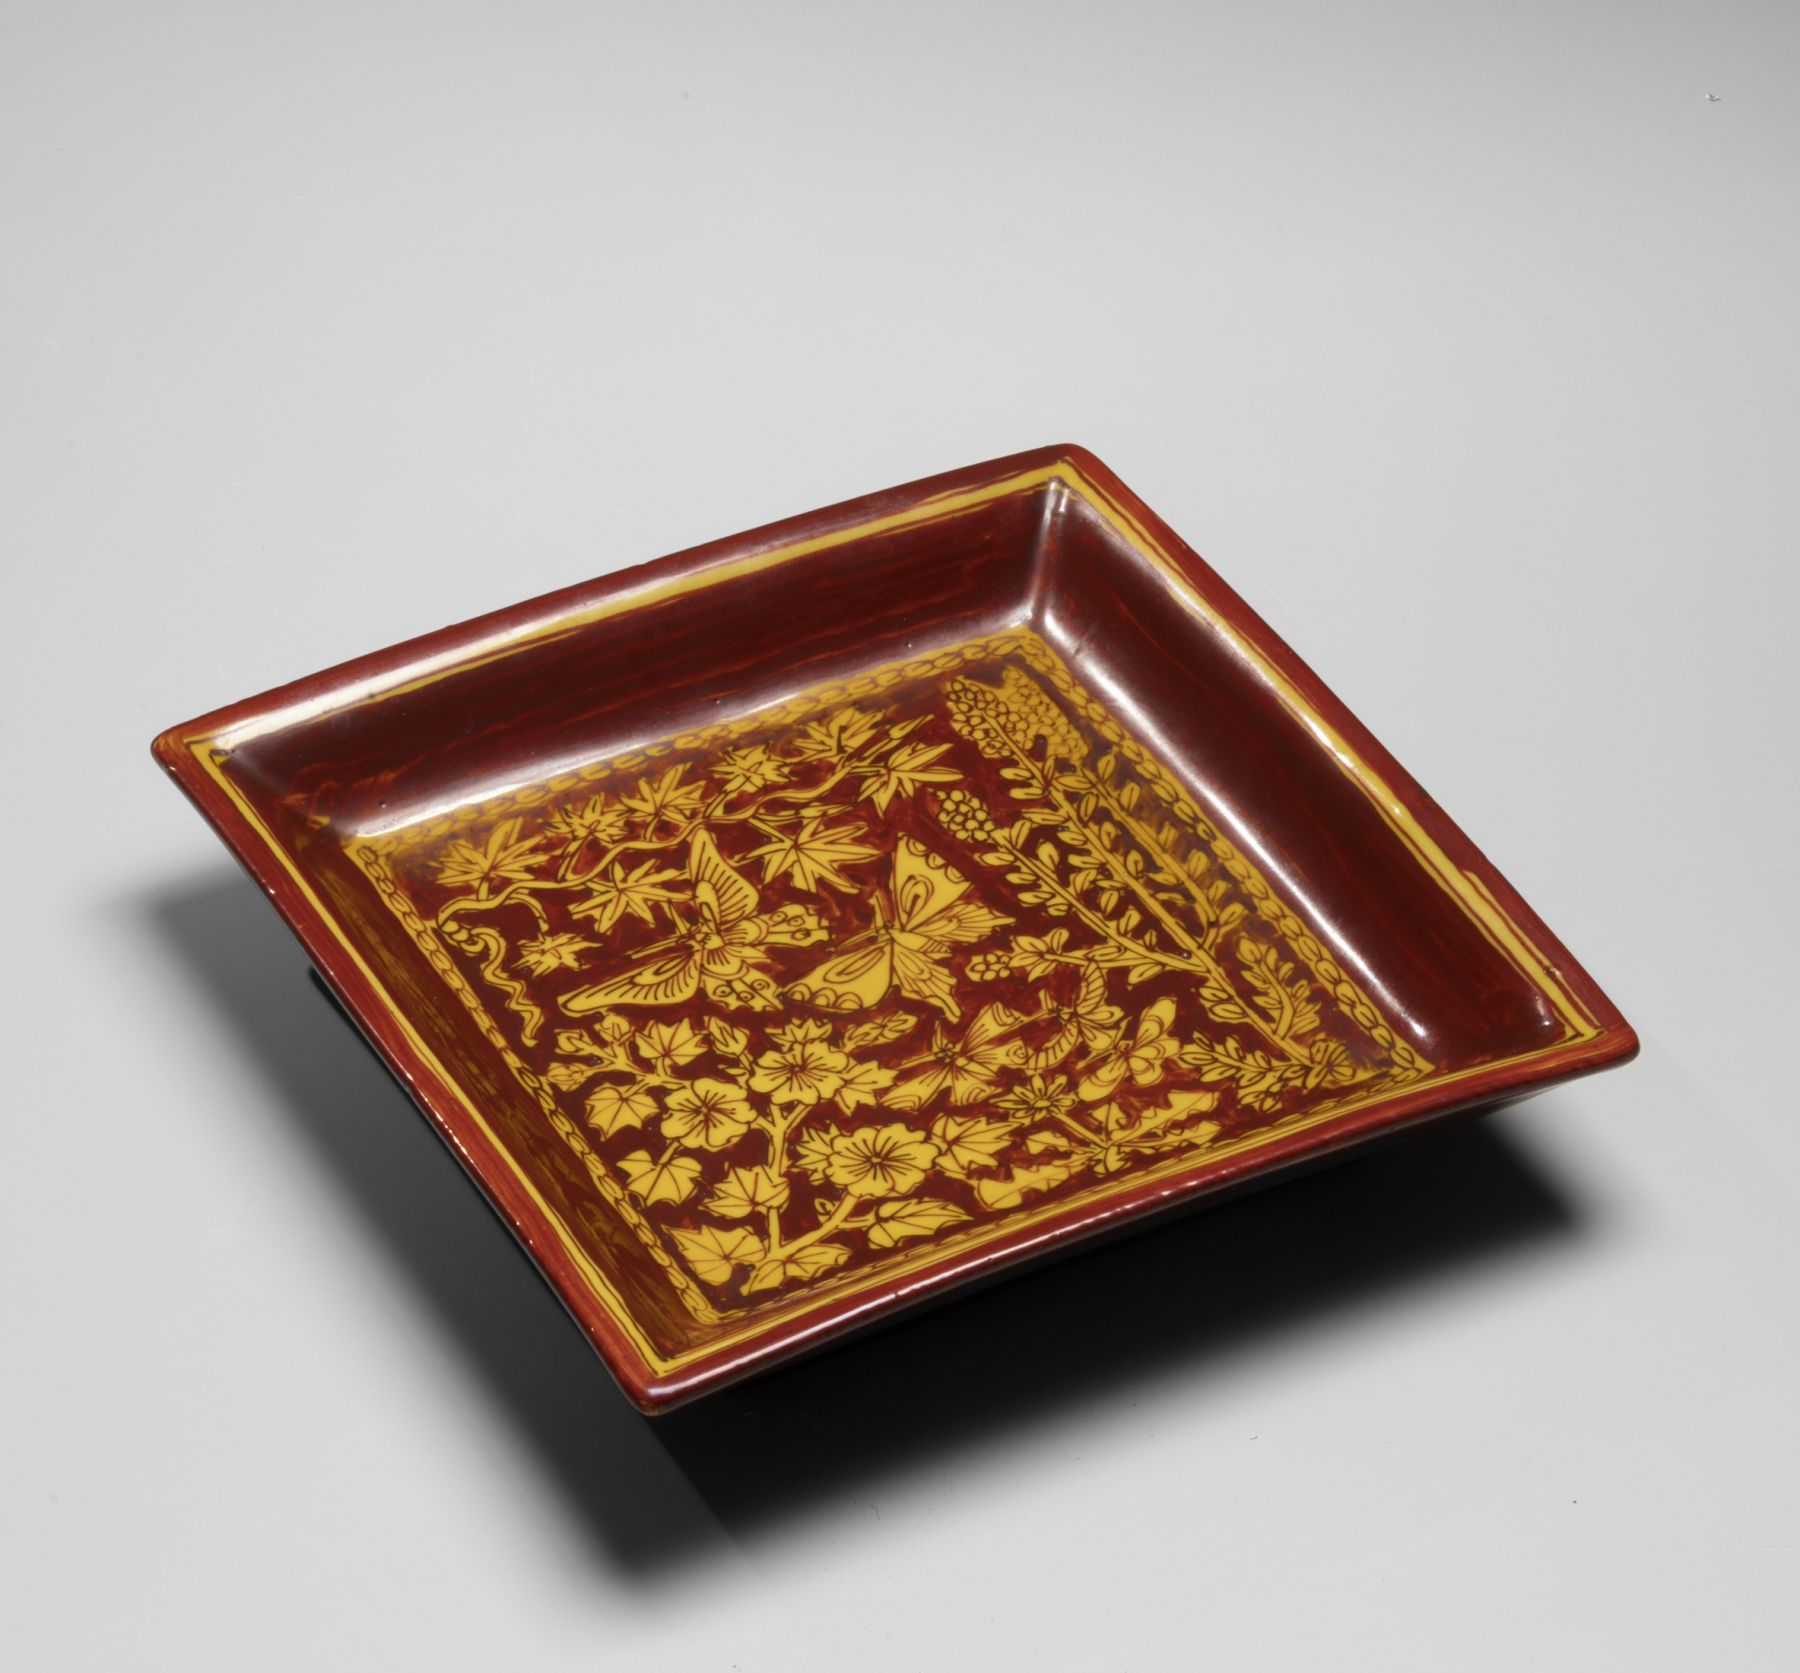 Katō Hajime (1900-1968), Chinese-style square plate with red and yellow glazing